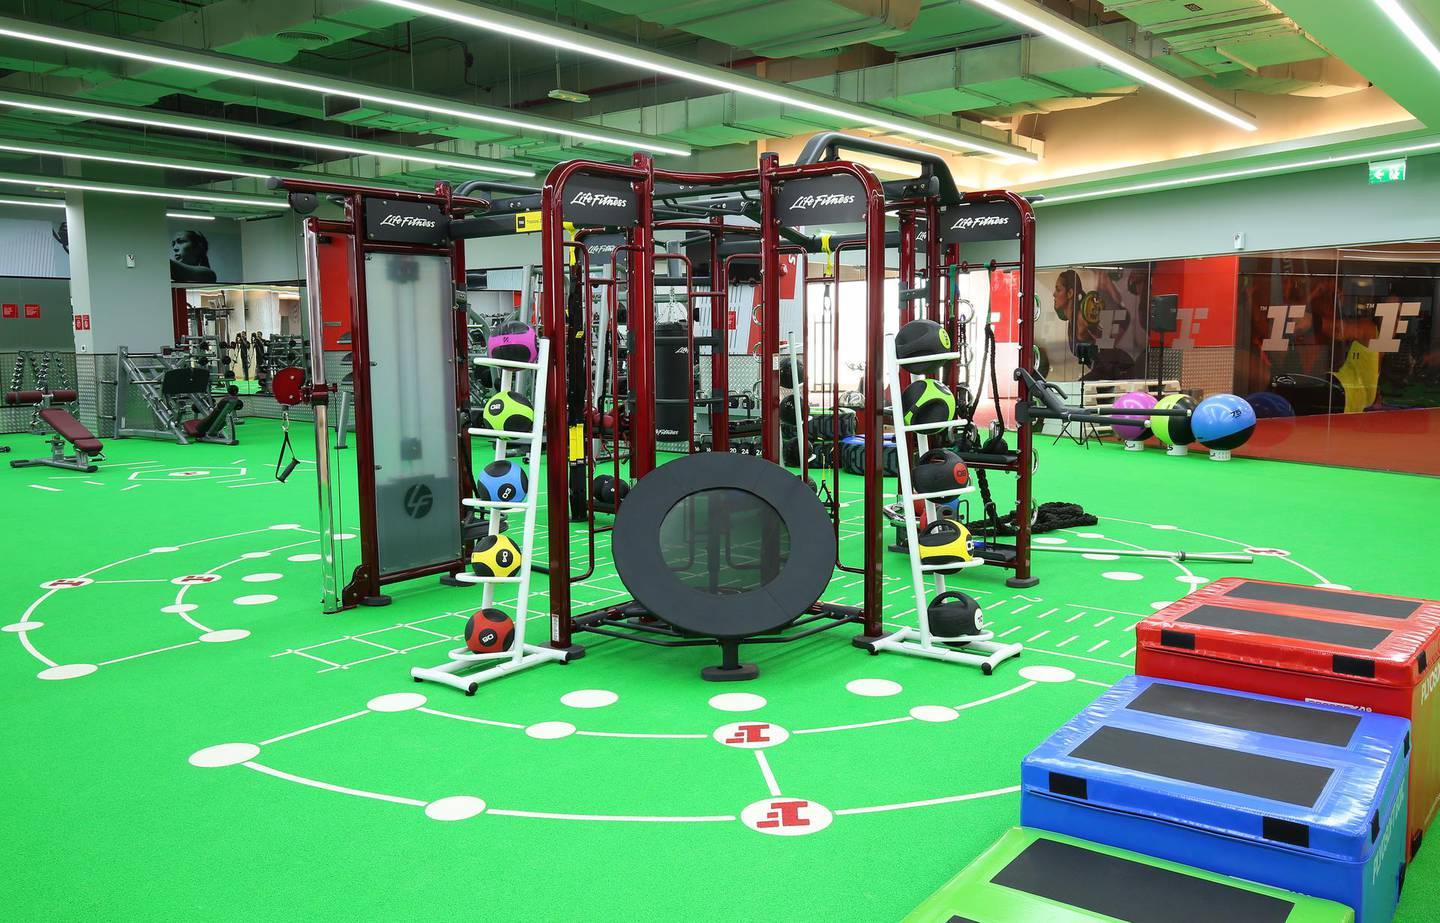 March 7, 2017 - Inside Fitness First gym. Courtesy Fitness First *** Local Caption ***  GB_13793.JPG